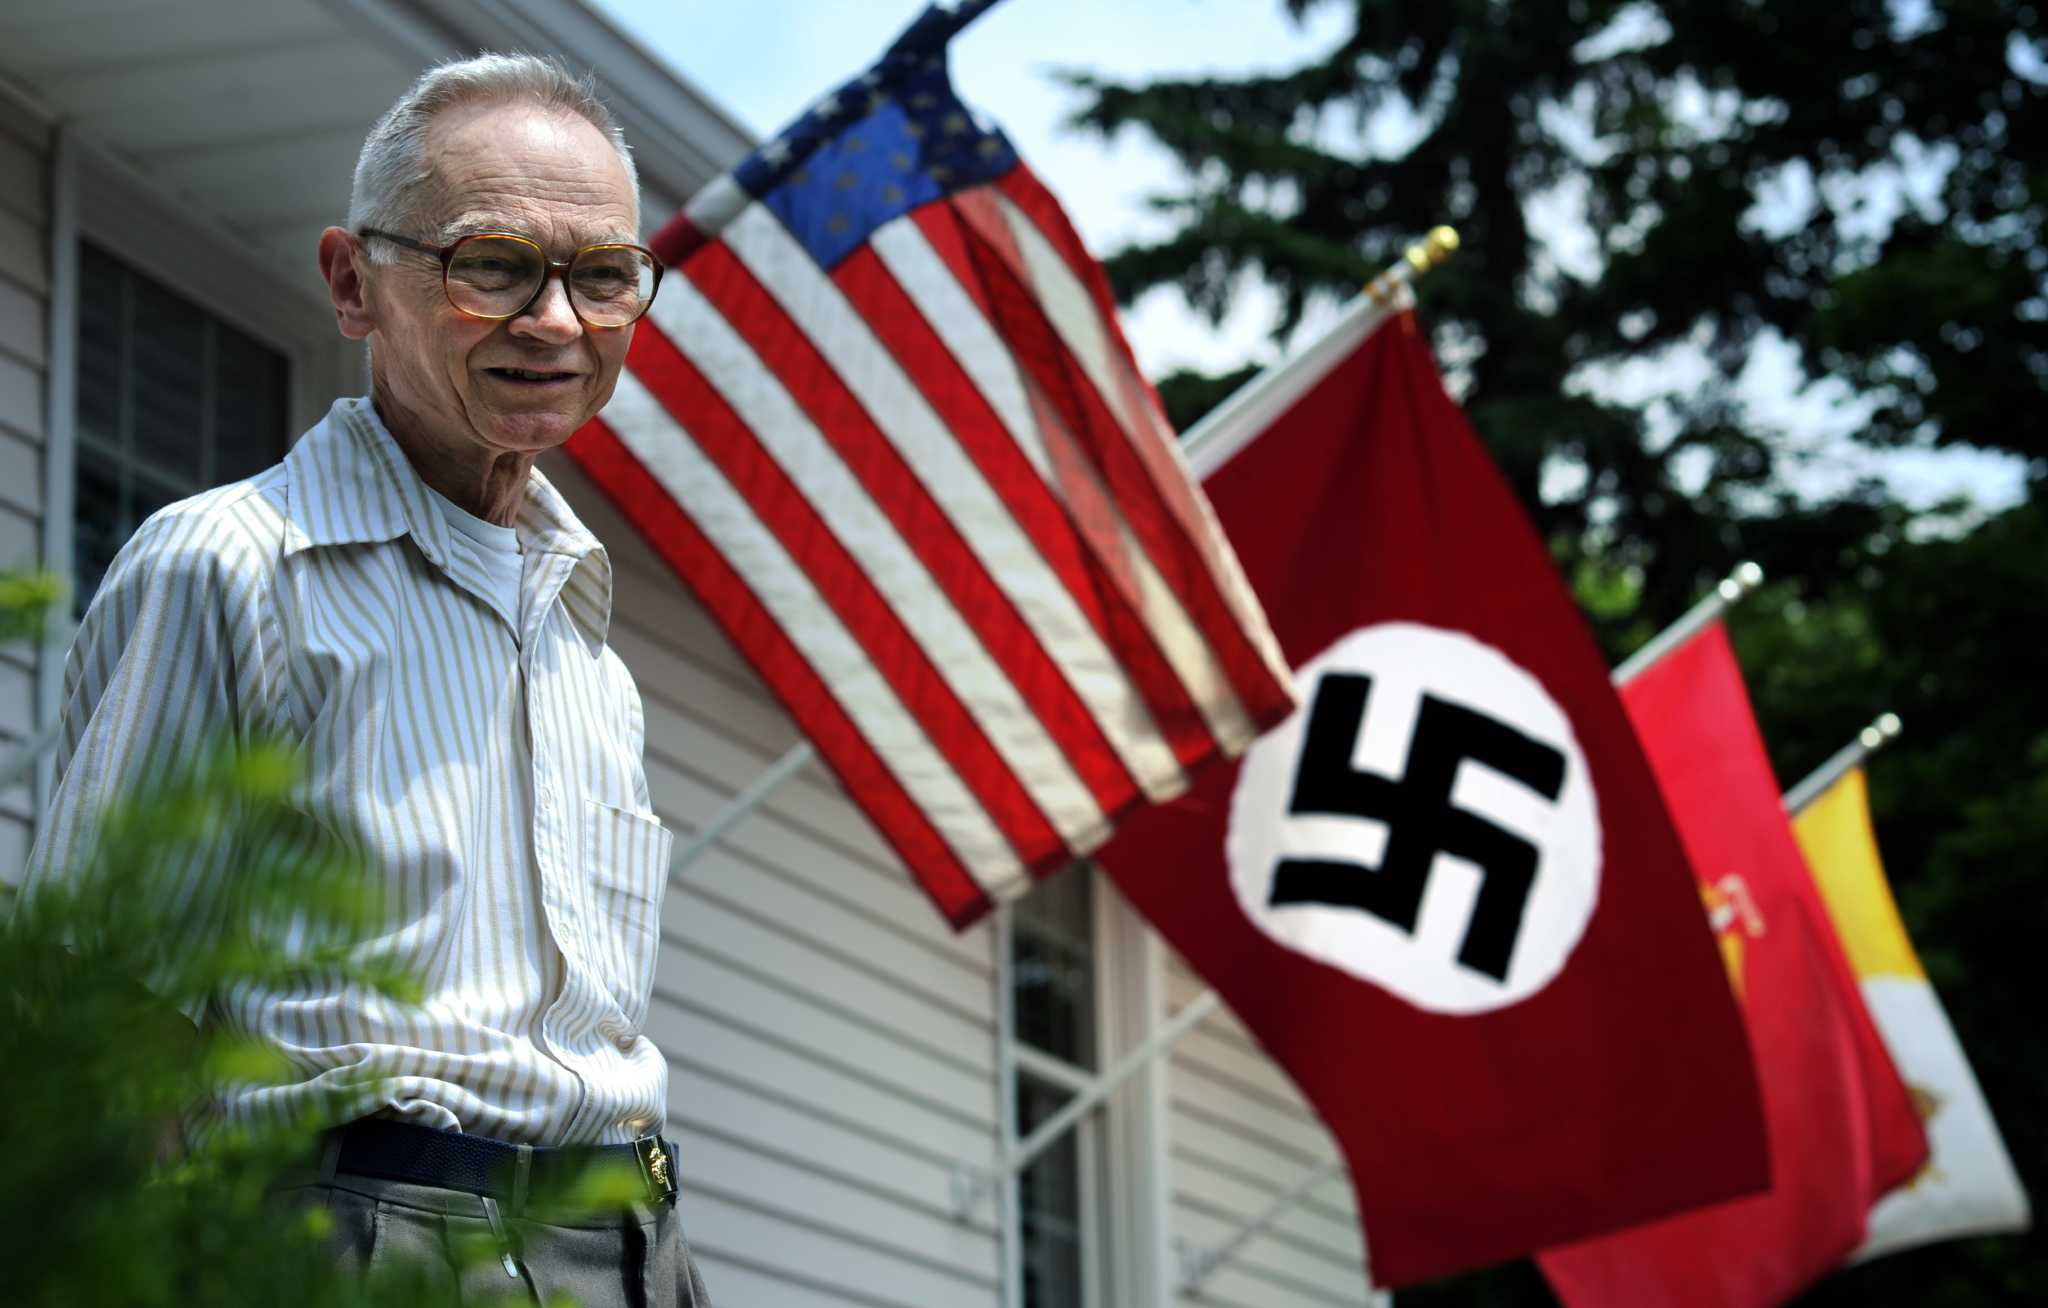 Stratford Man Displays Nazi Flag In Protest Connecticut Post